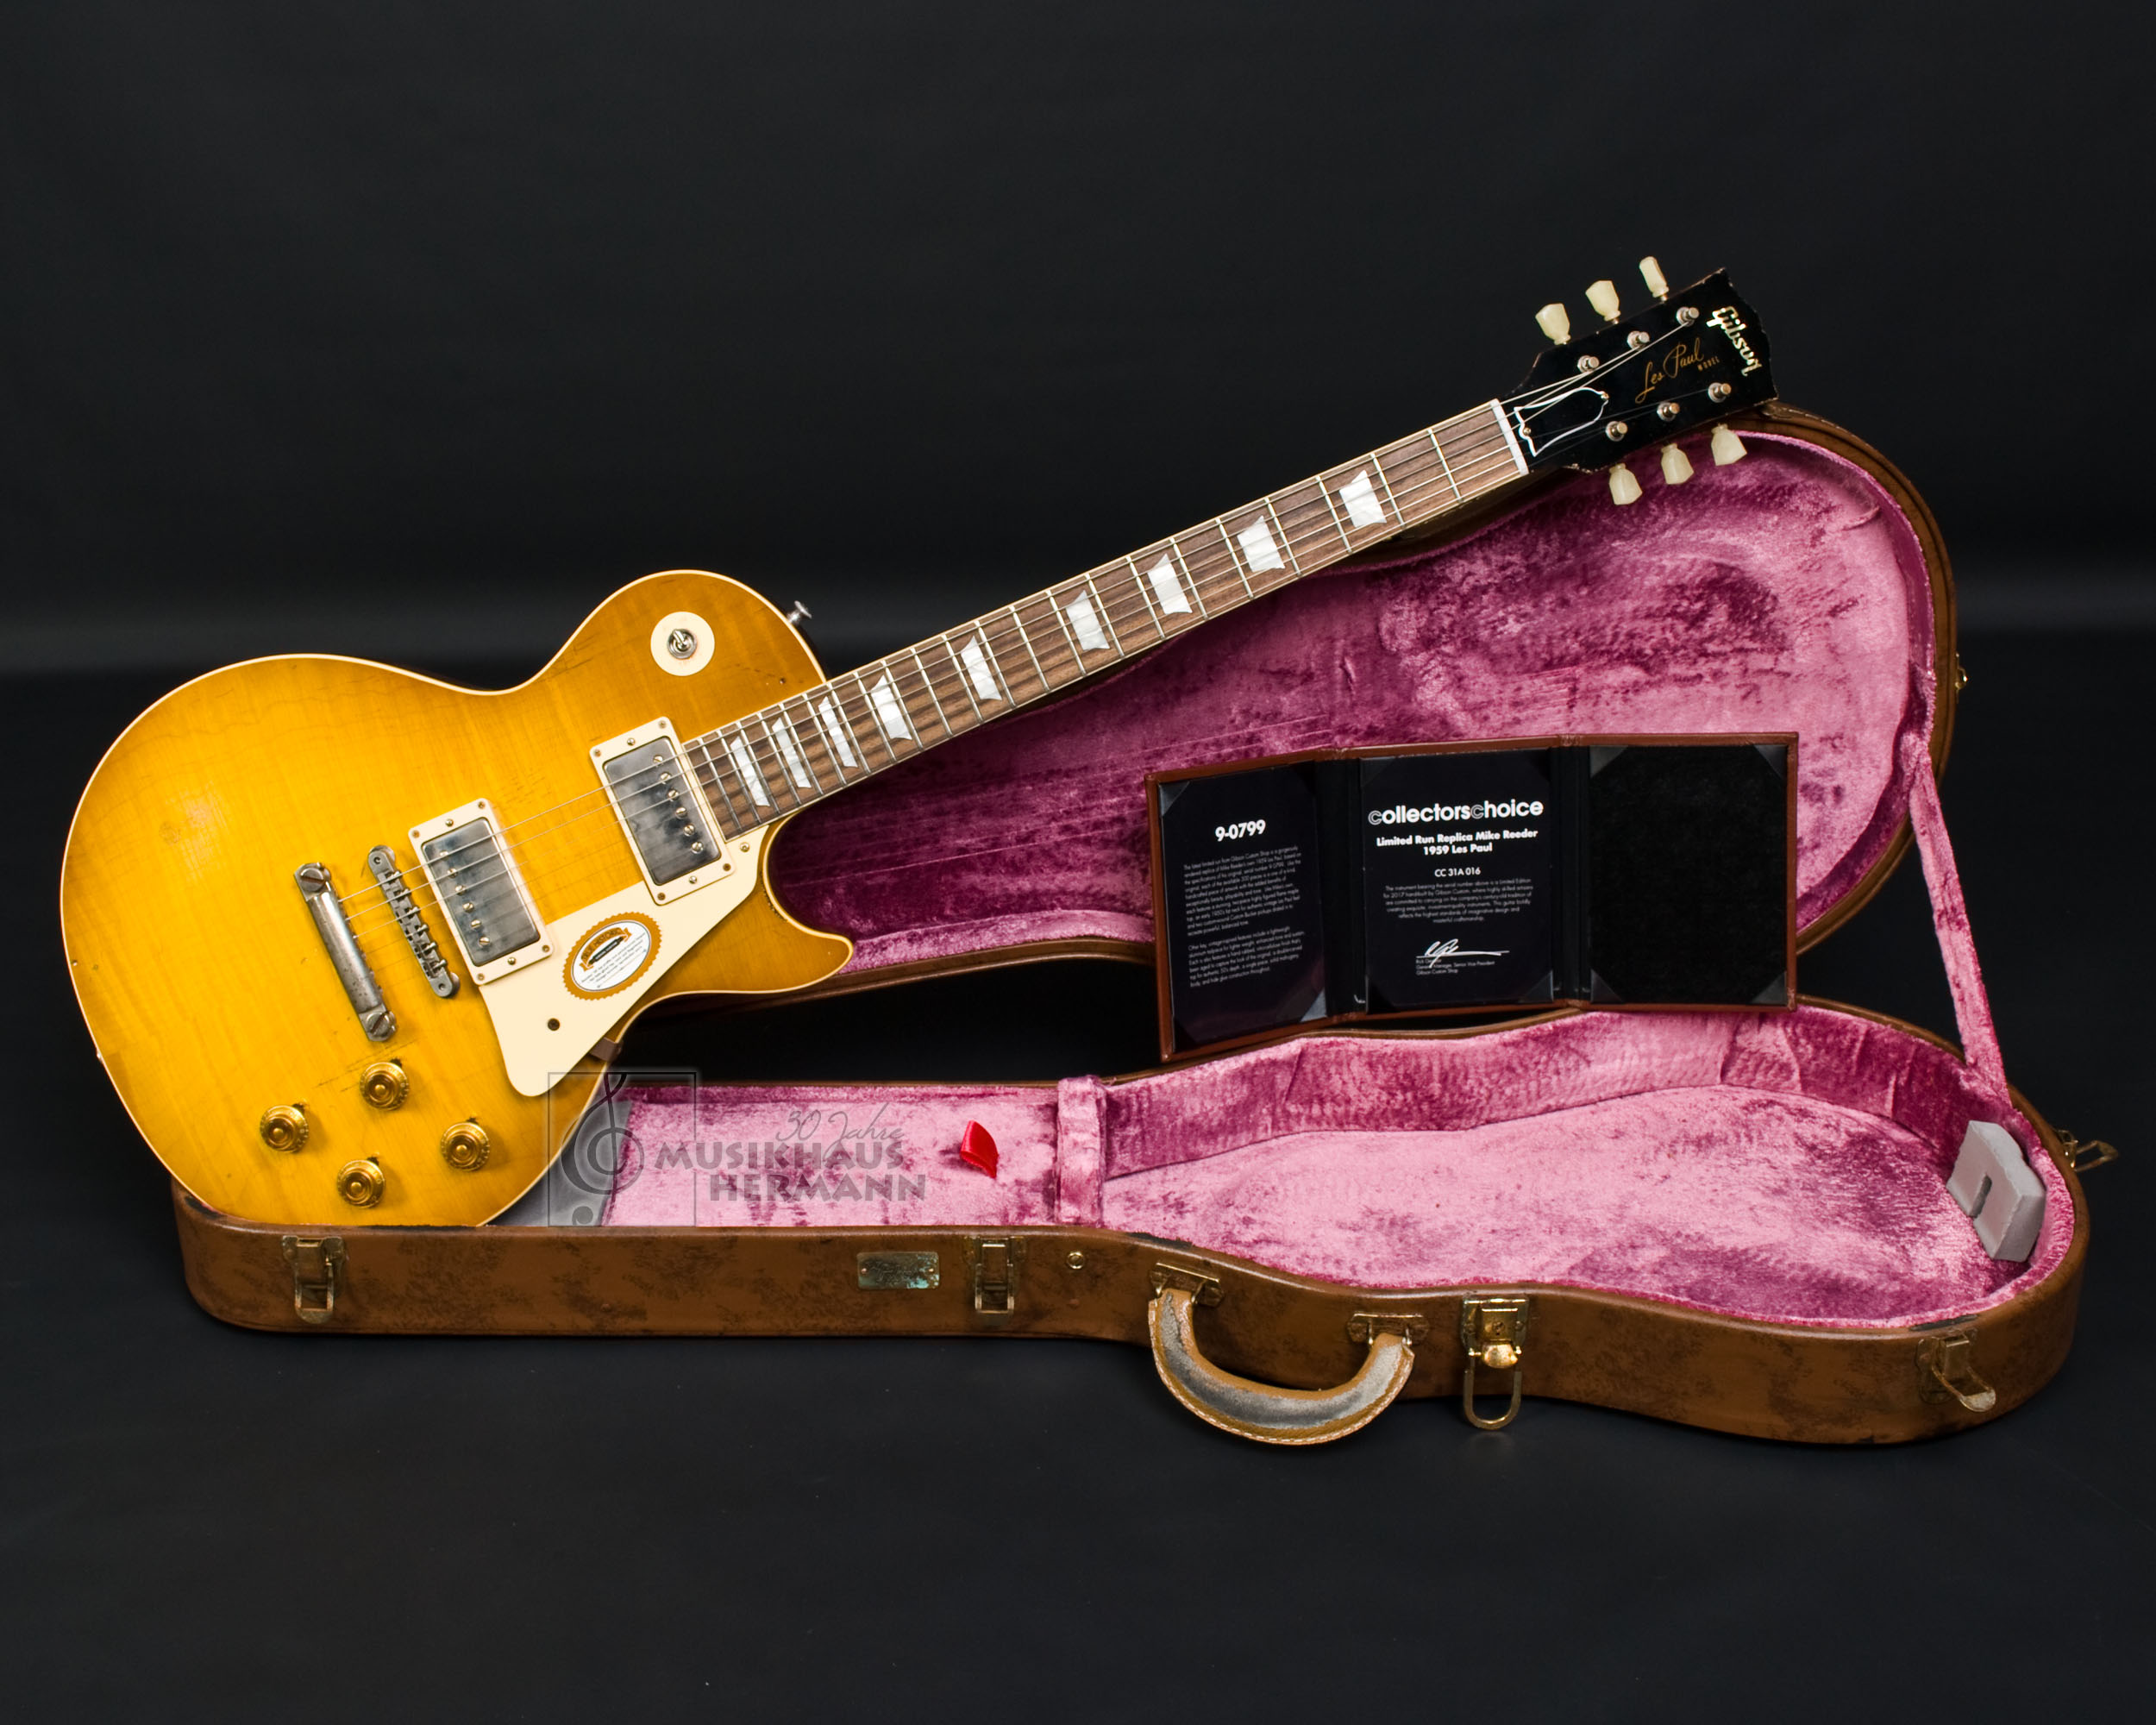 Gibson Les Paul 1959 CC31 Collectors Choice 31 Mike Reeder